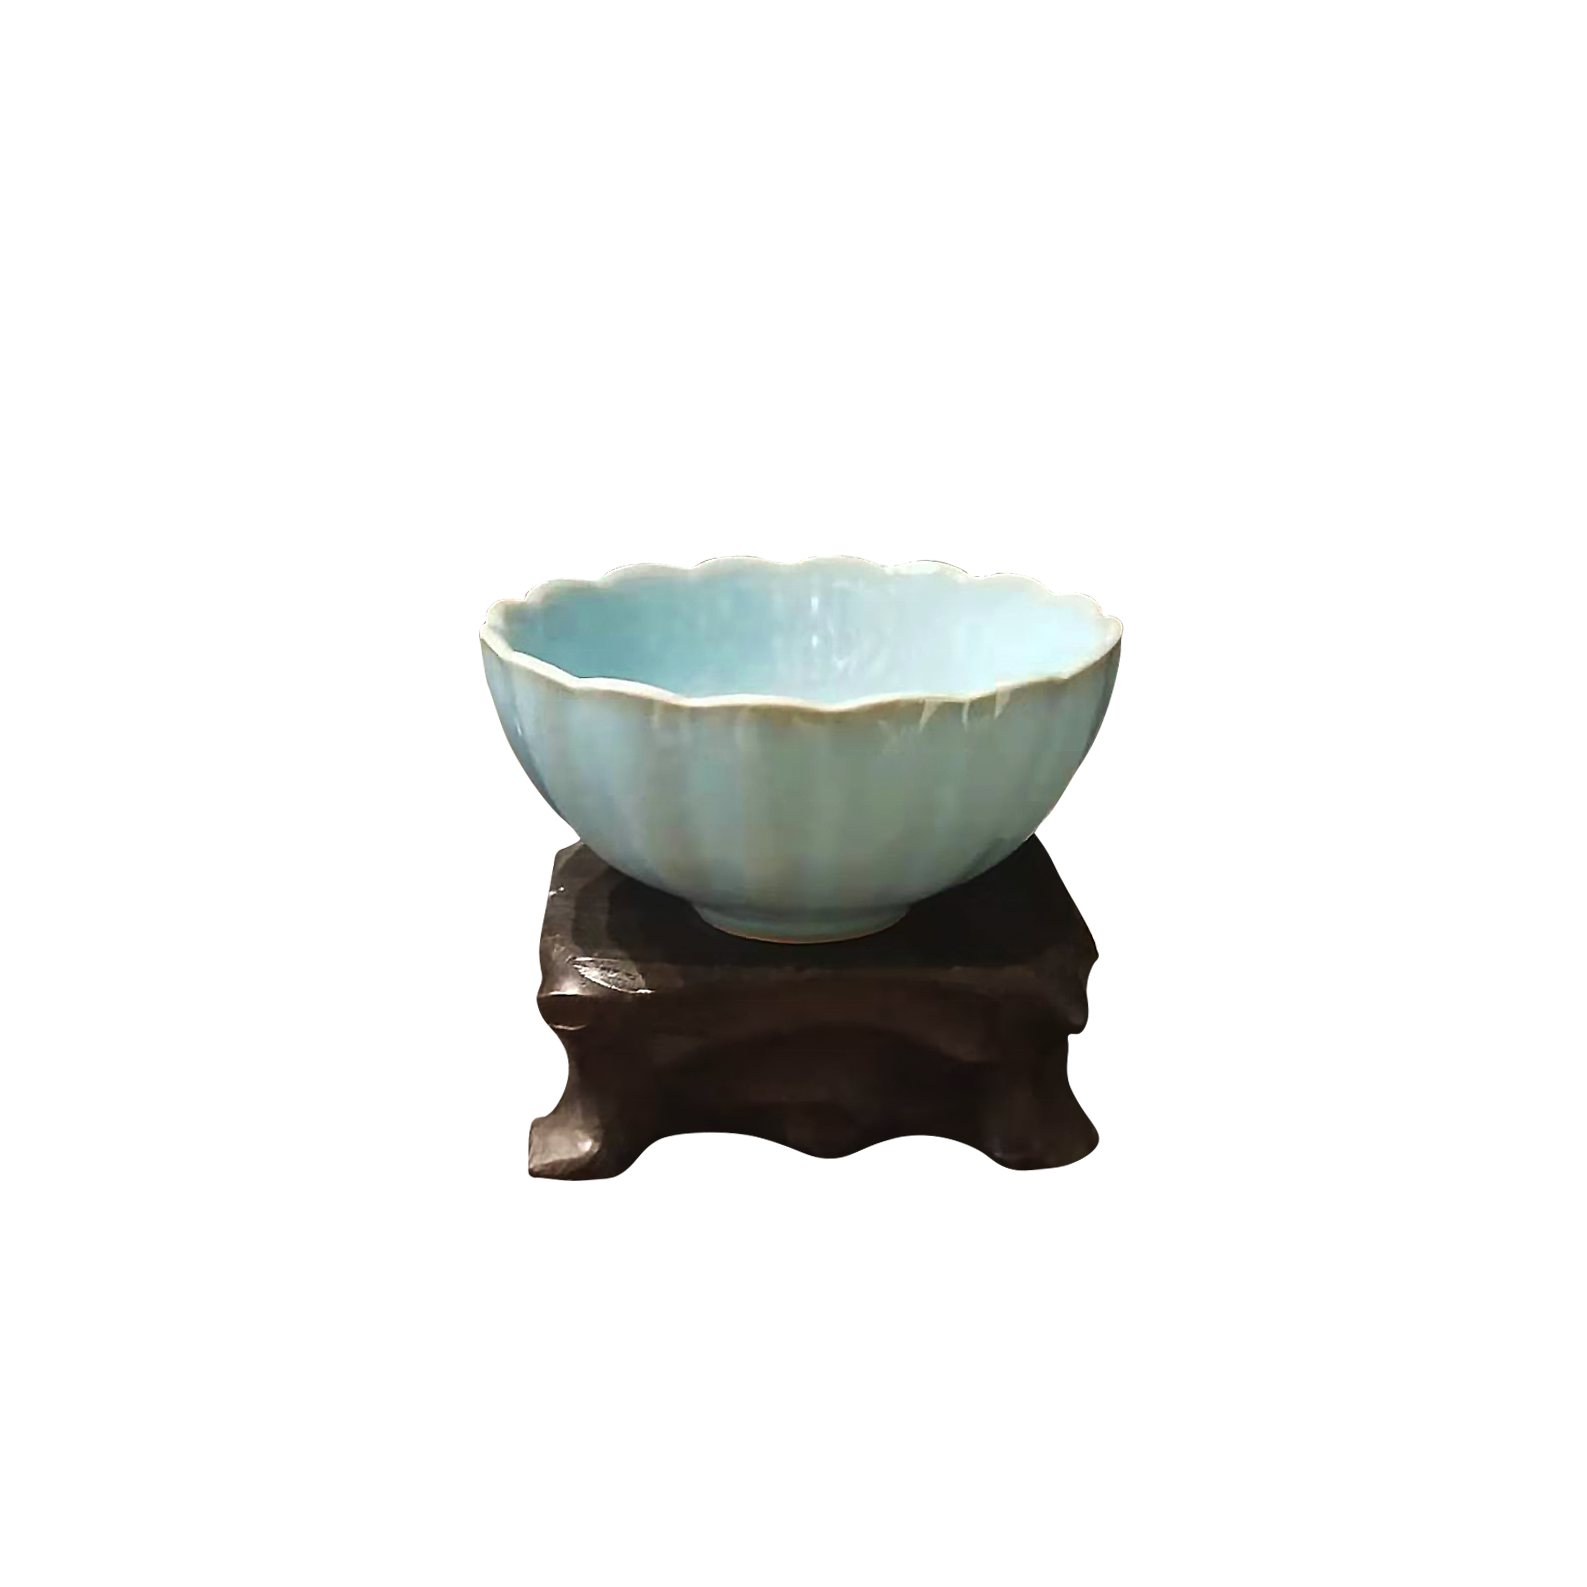 Ru porcelain blue and green color cup Popular ceramics new year gift for friends parents home tea chinese style